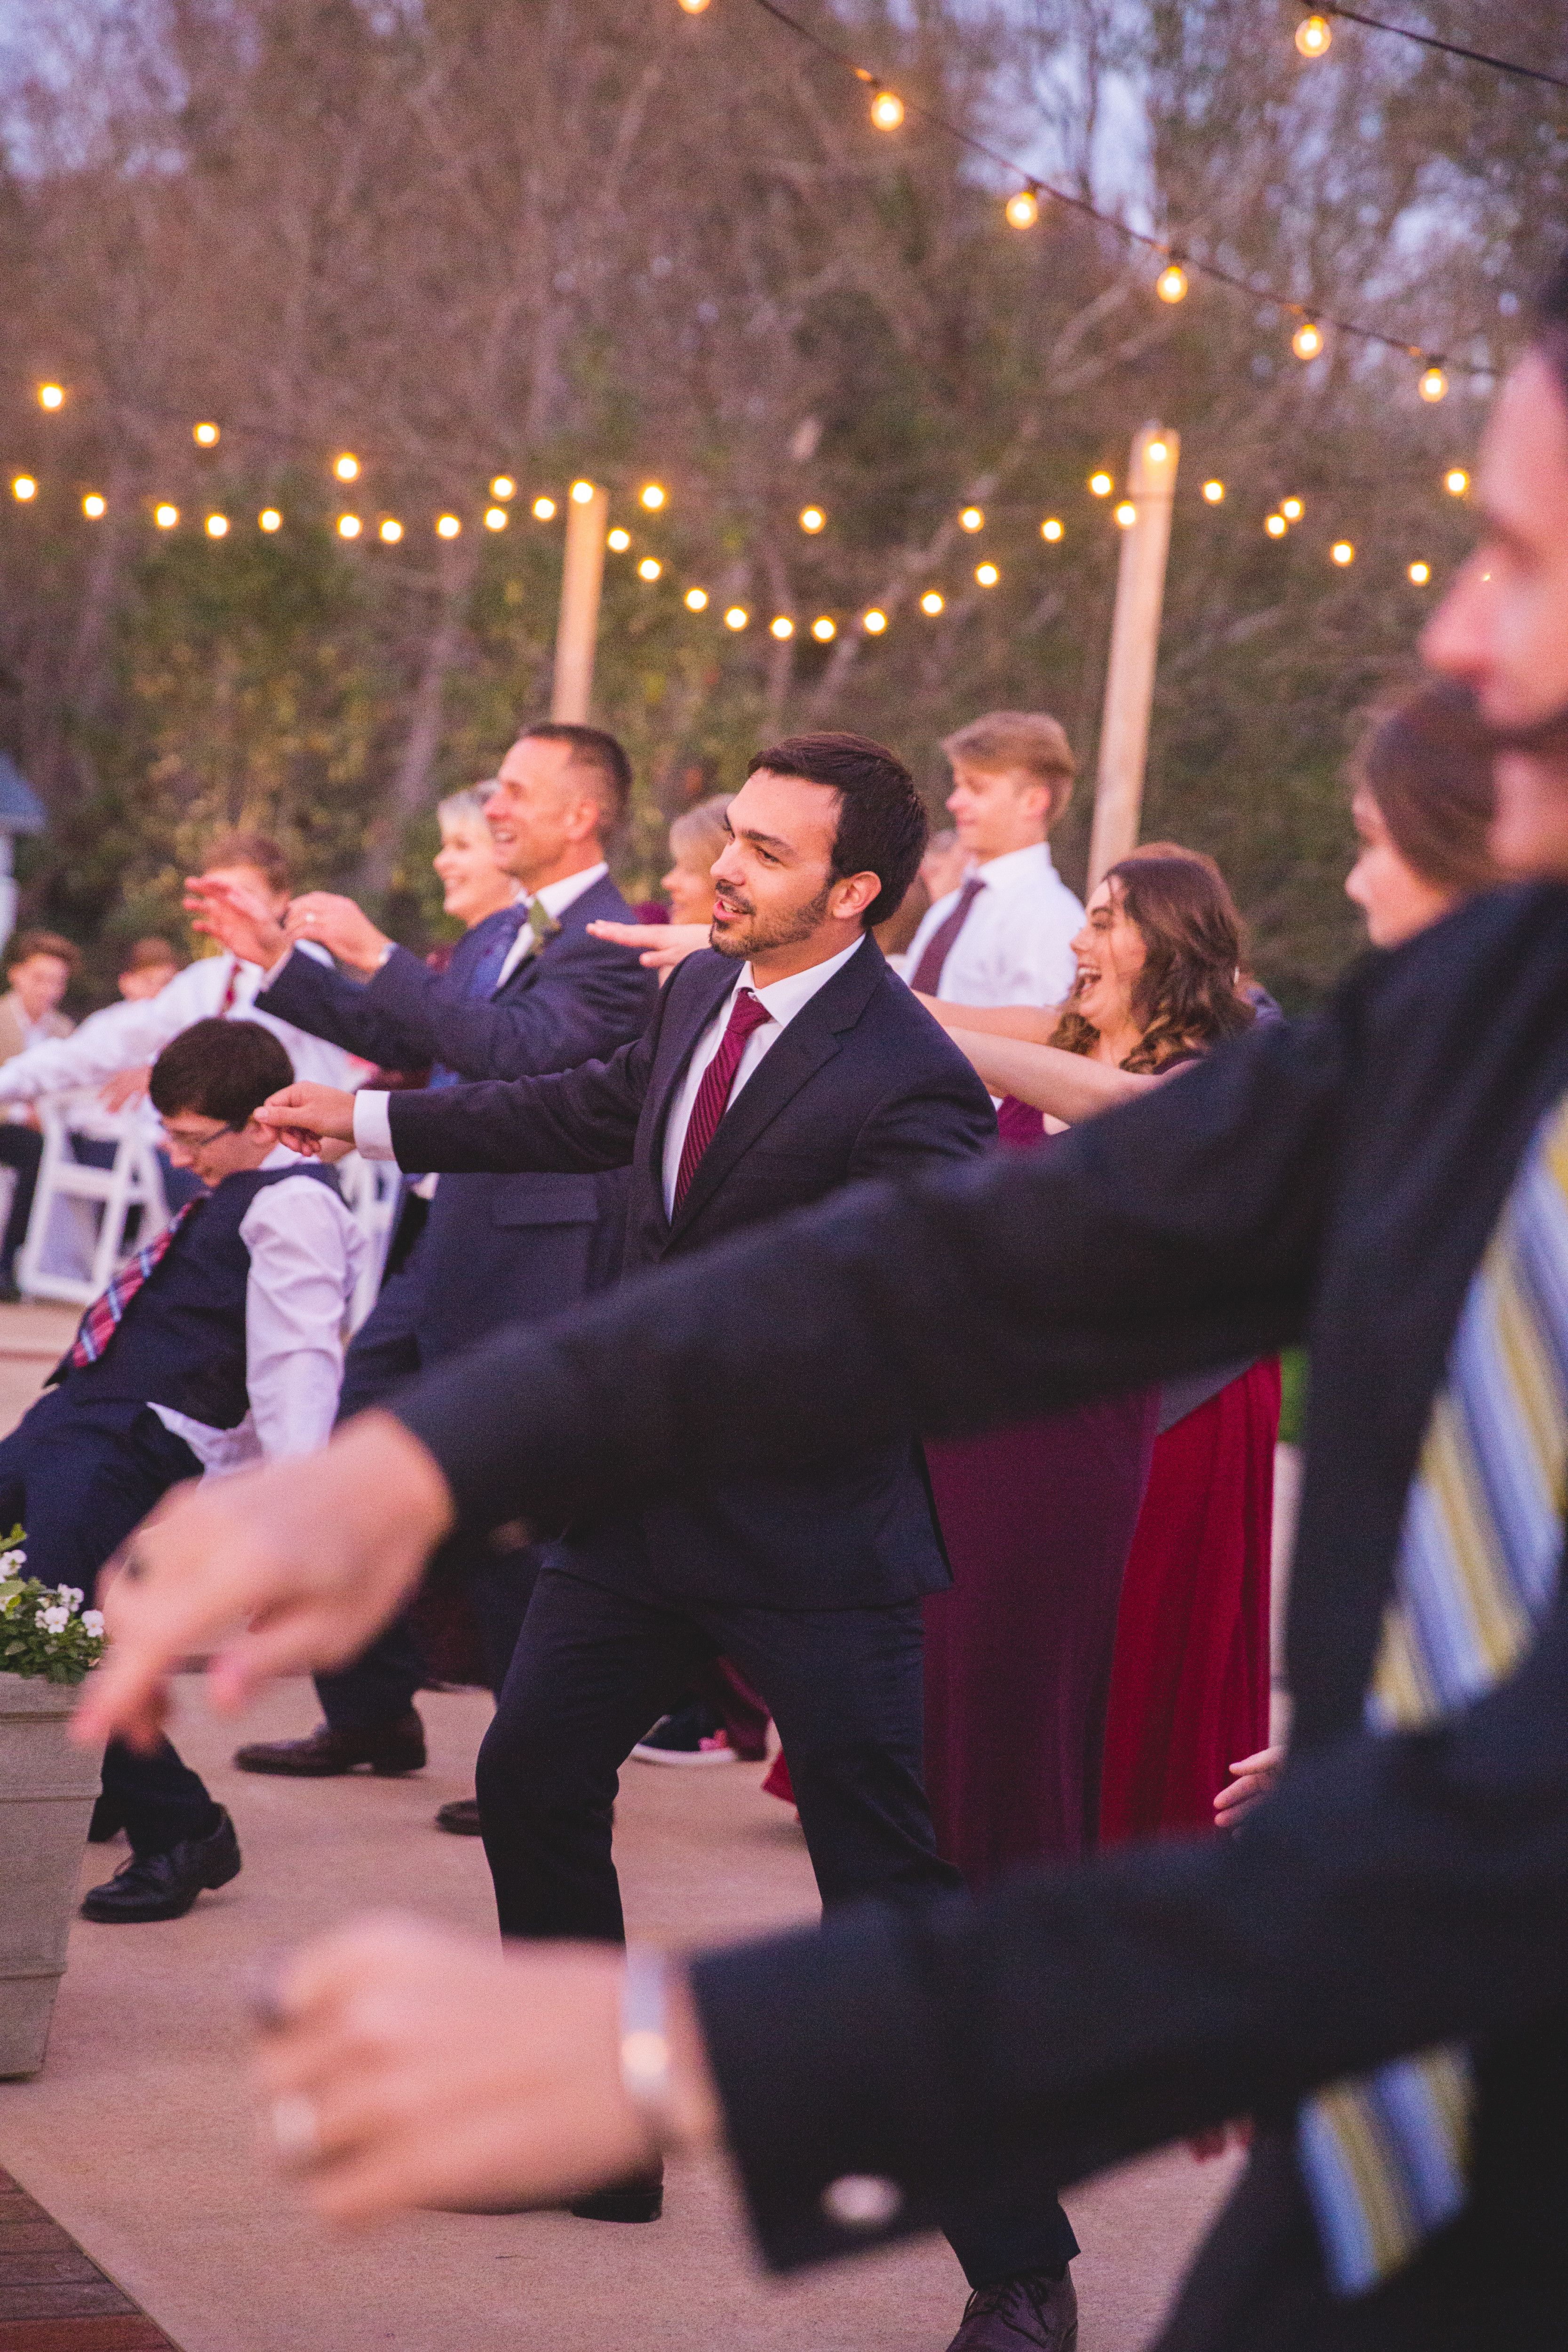 The Bridal Party Did A Flash Mob During The Reception To Thriller